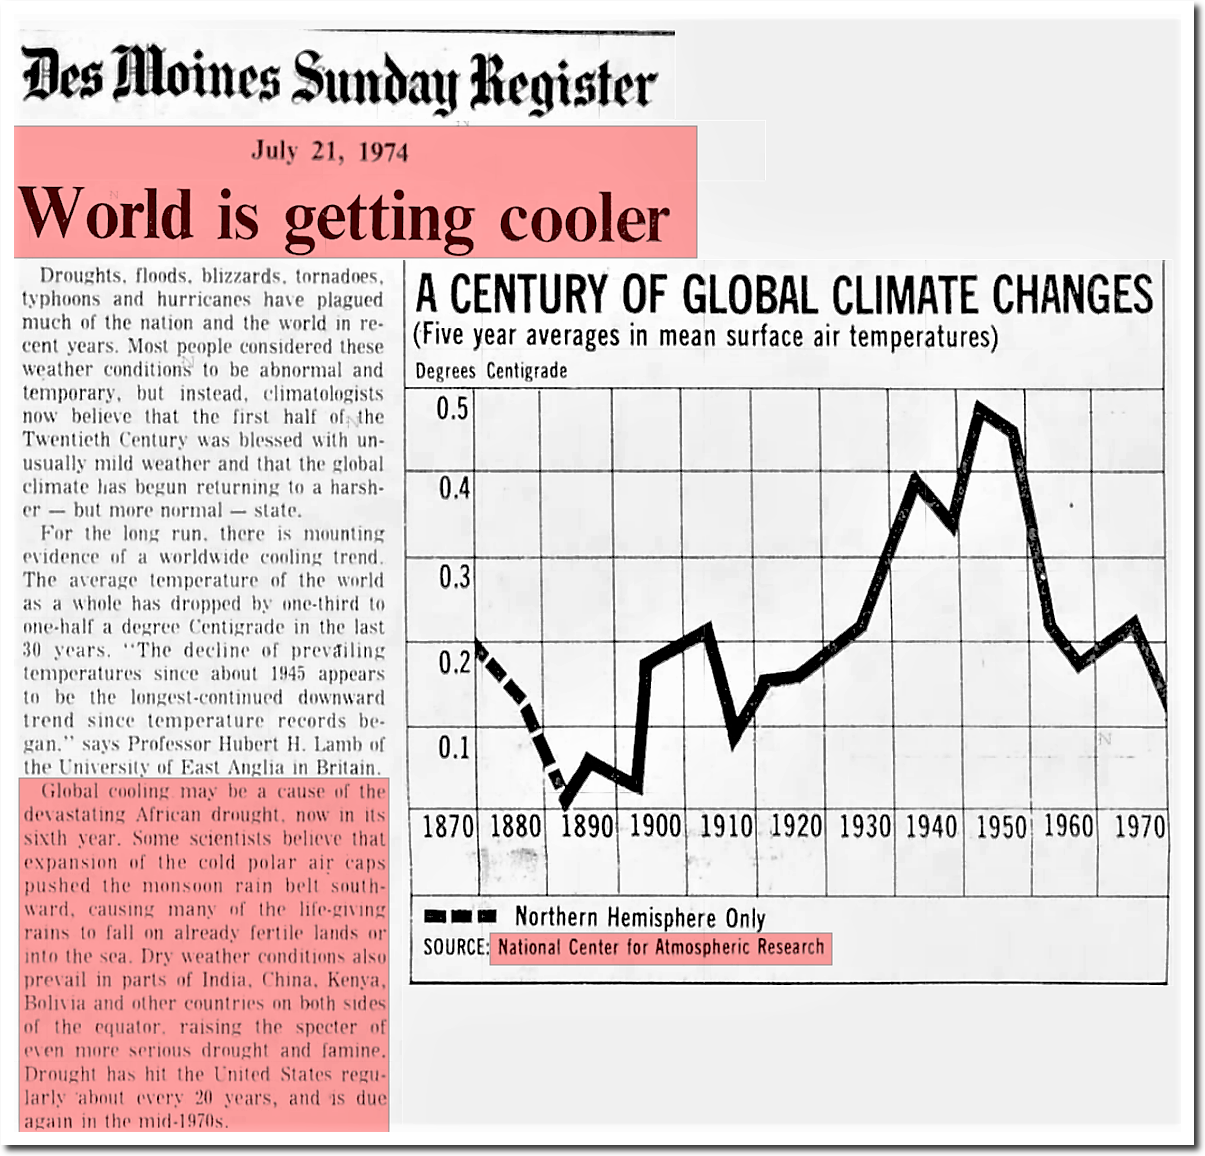 Flashback 1974: Unanimous Consensus Global Cooling Would Lead To Mass Starvation